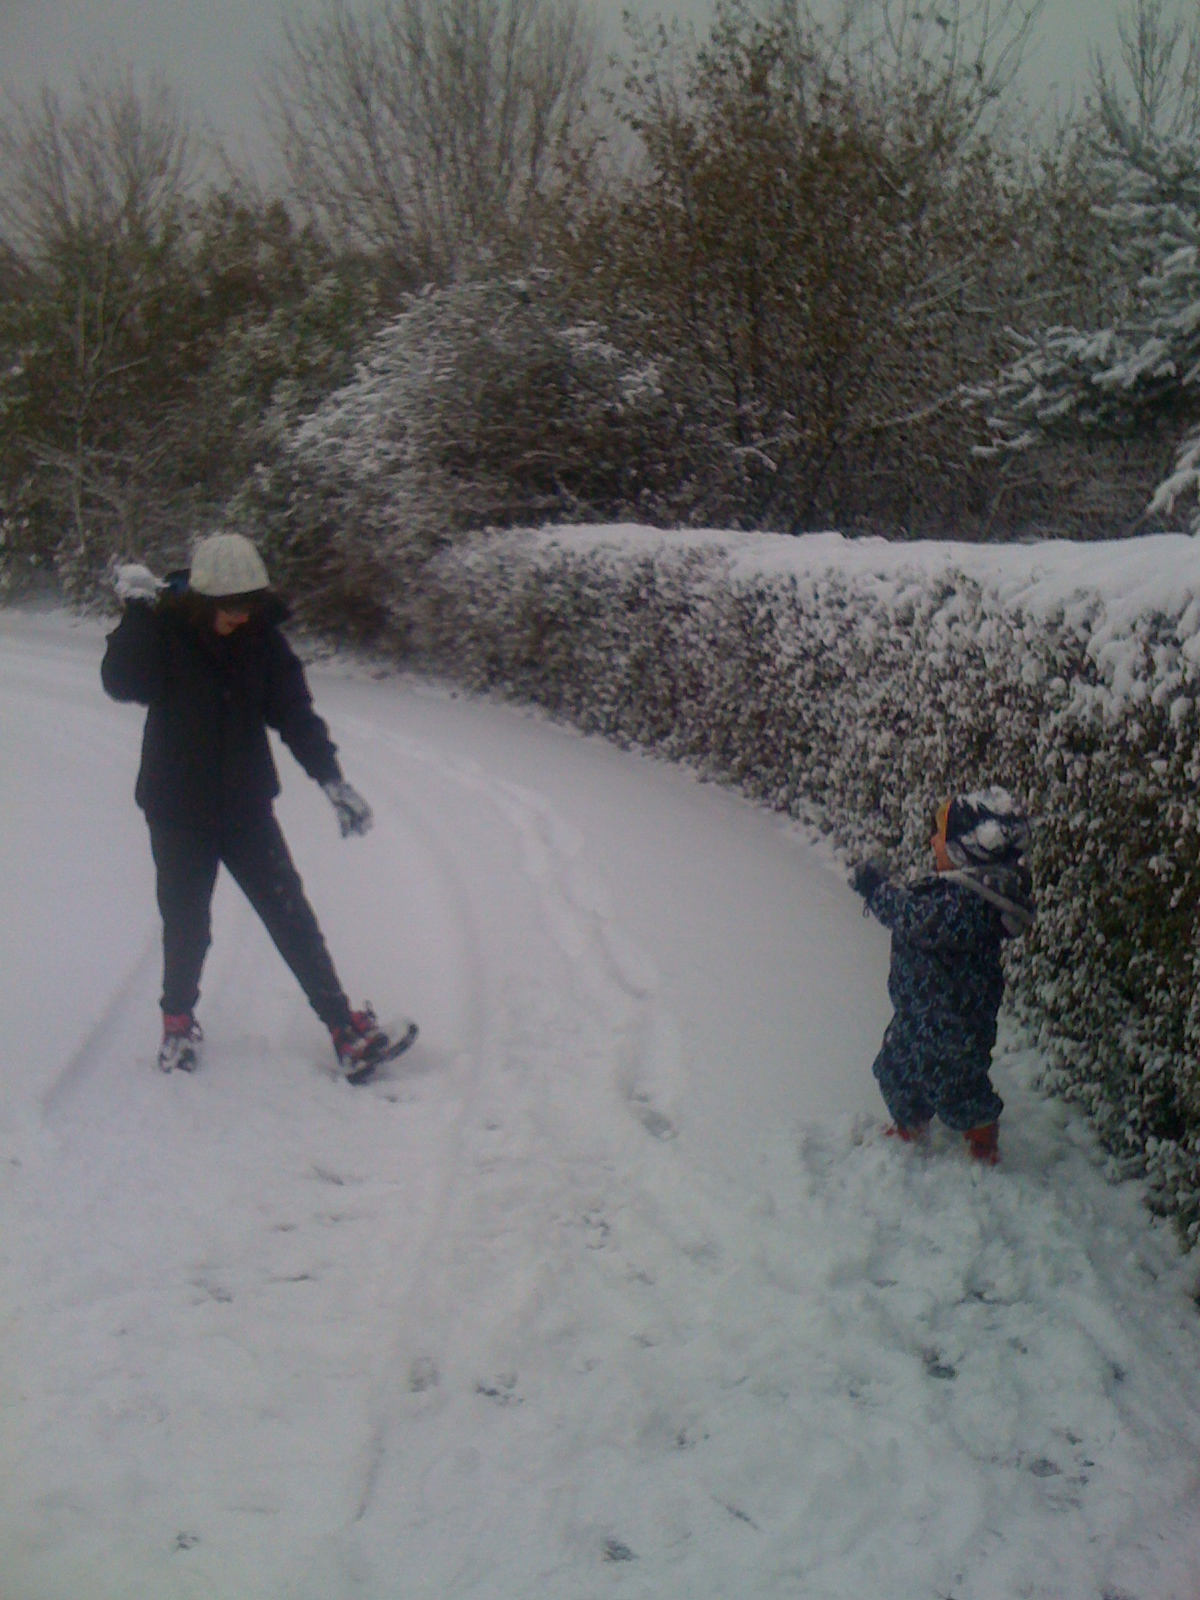 Isaac and Abbey having a snowball fight - December 2010